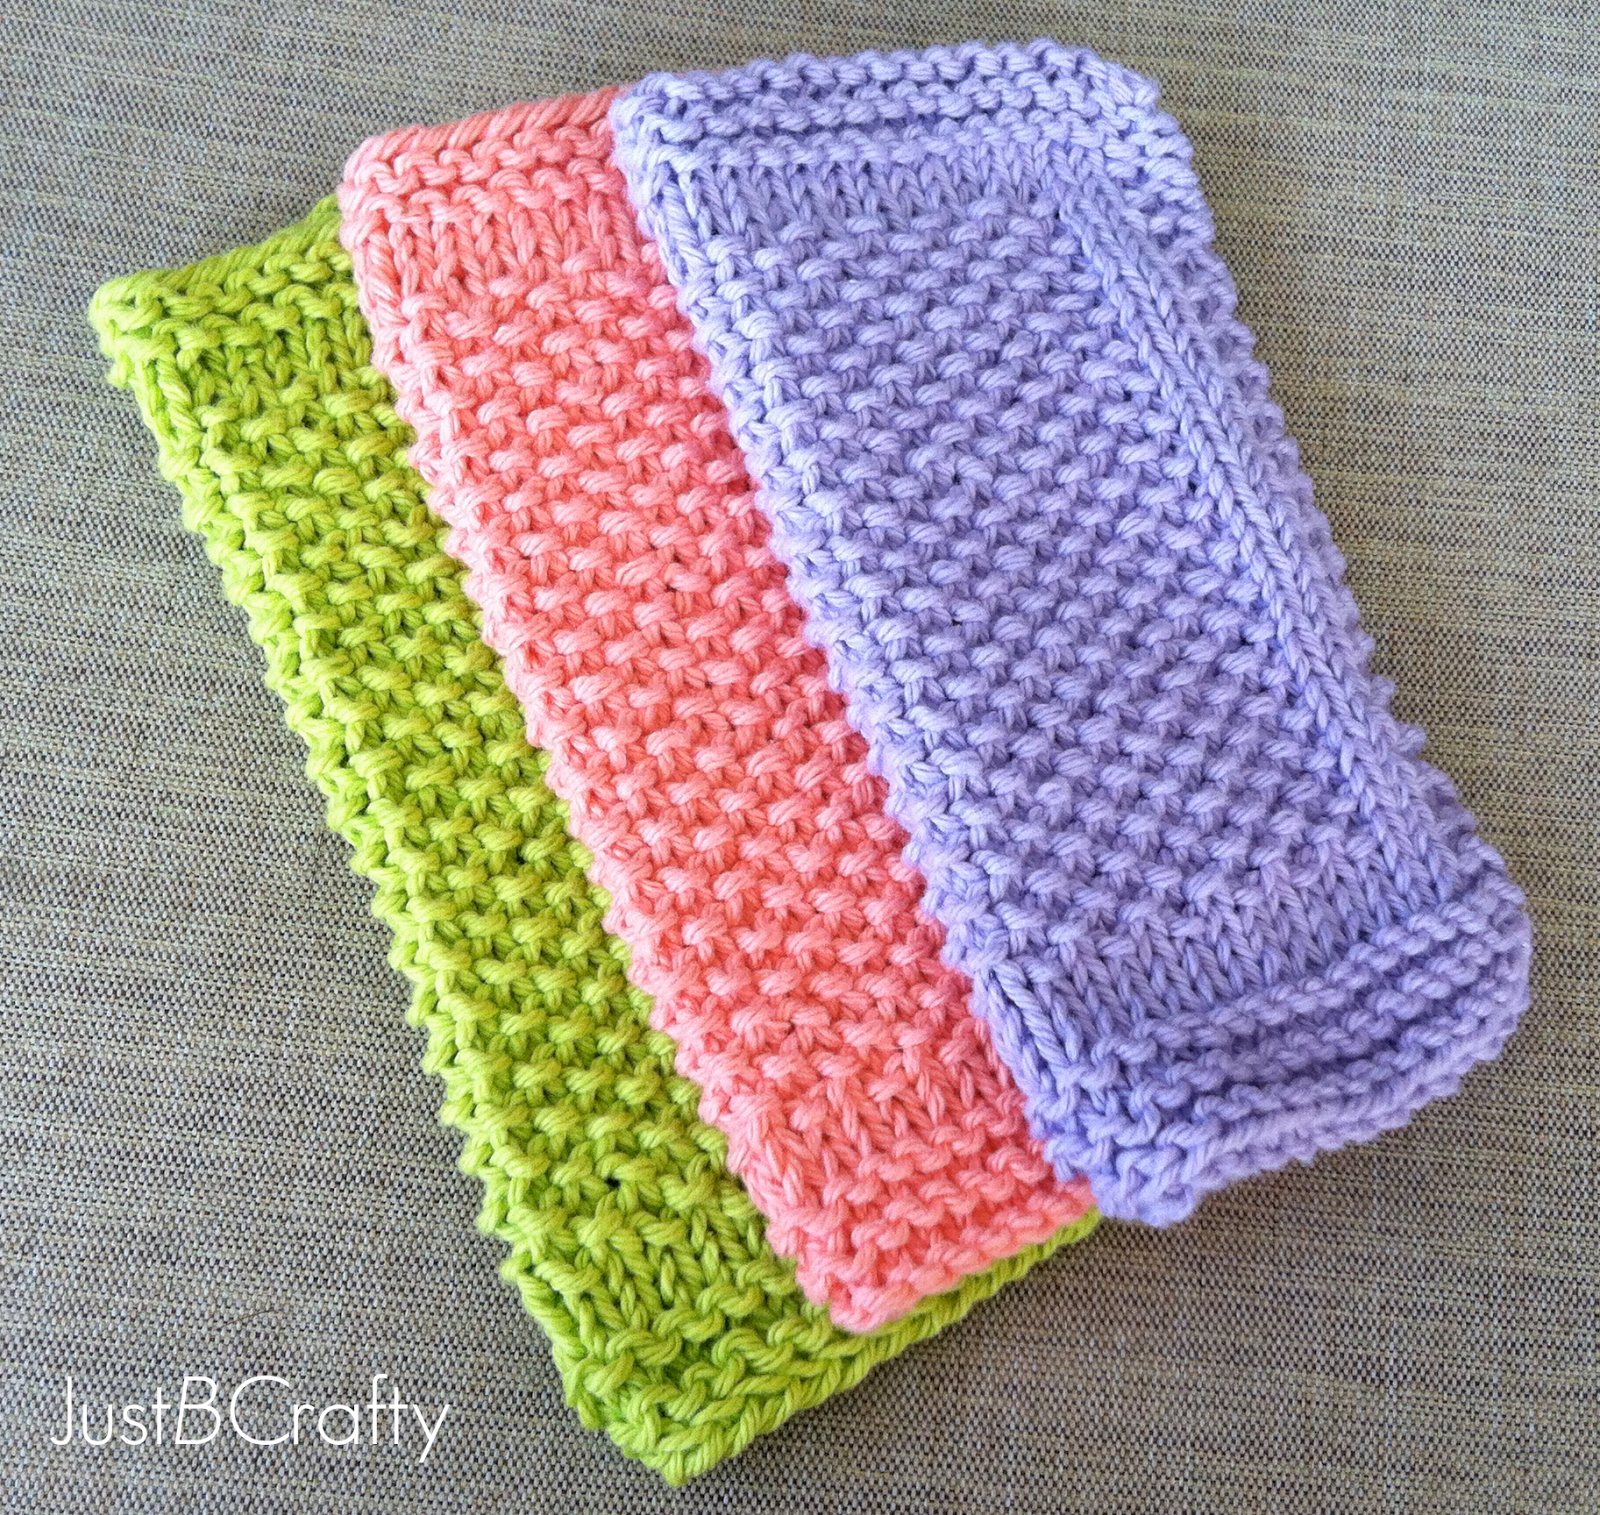 Beginners Knitting Patterns : Seed Stitch Dishcloths - Just Be Crafty